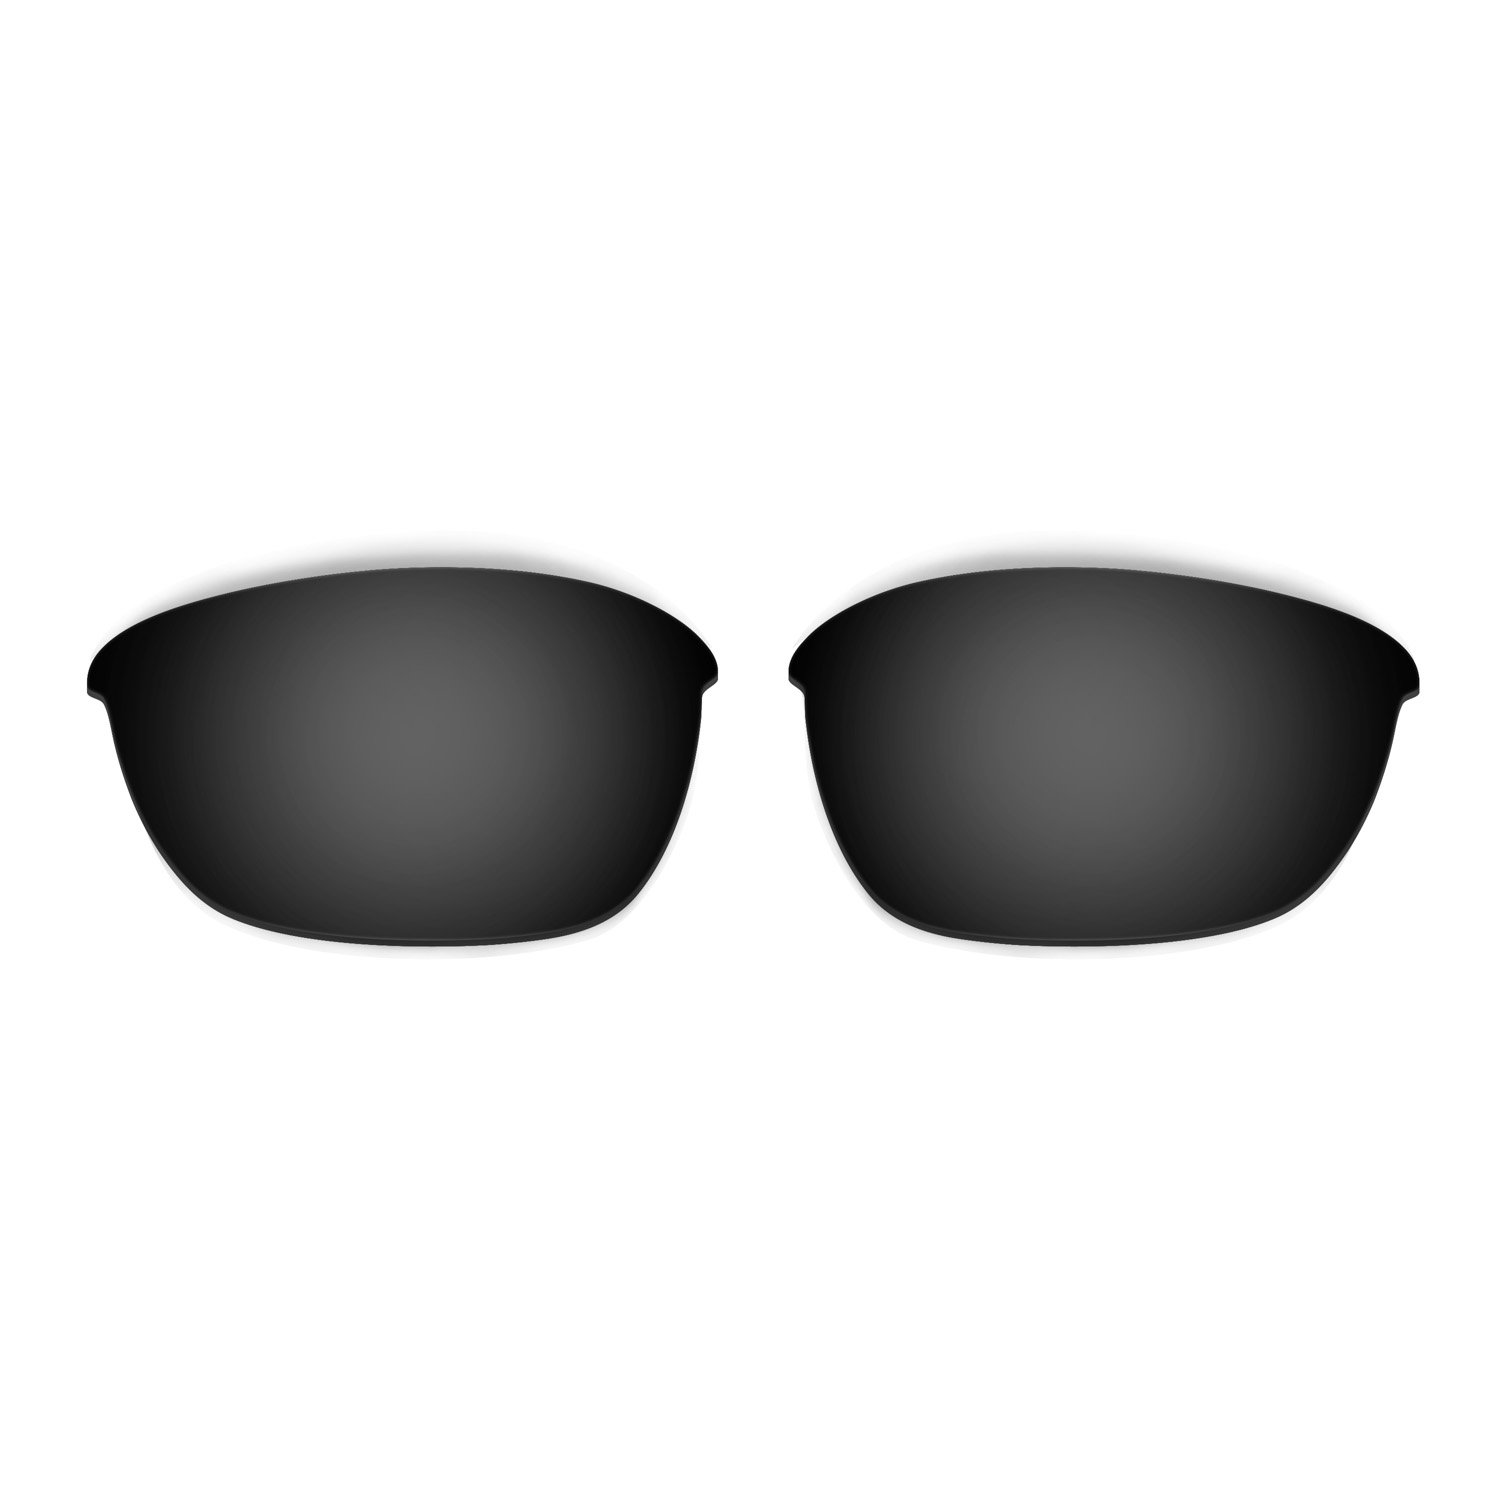 HKUCO Plus Mens Replacement Lenses For Oakley Half Jacket 2.0 XL - 2 pair Combo Pack